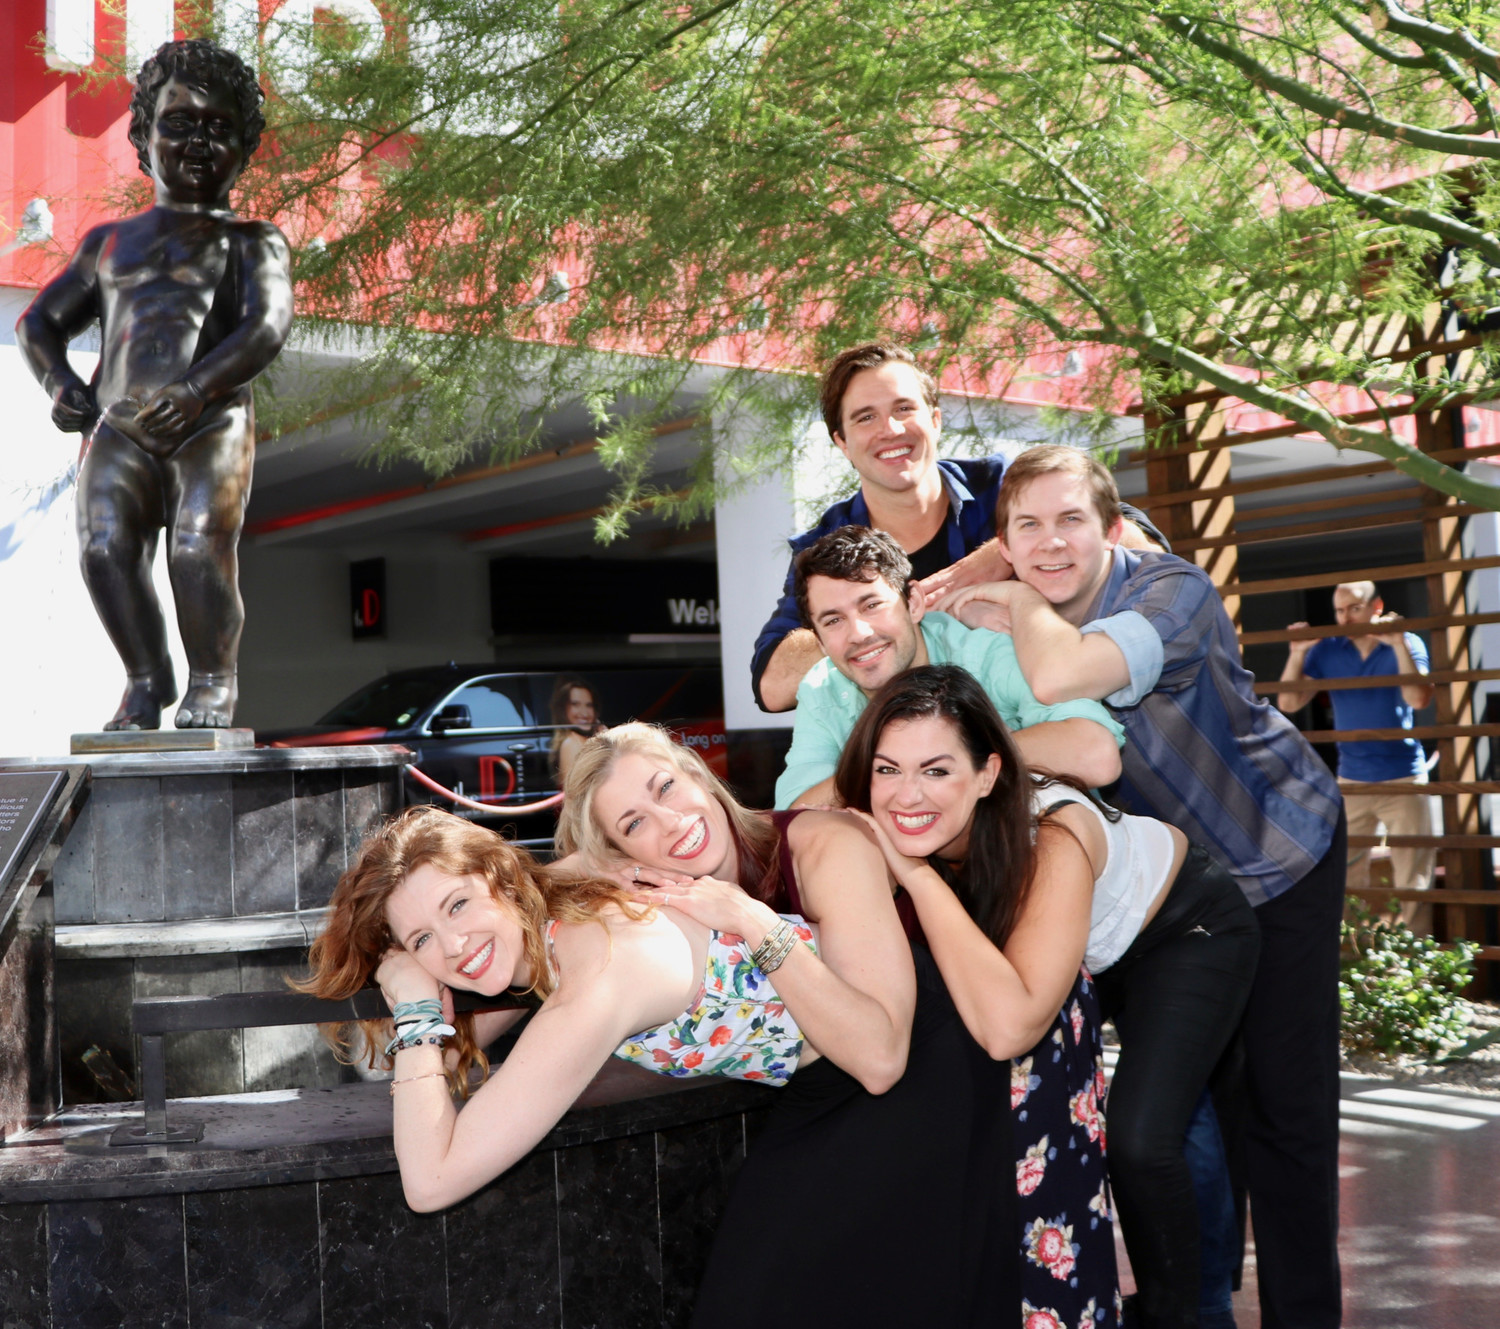 BWW Feature: FRIENDS! THE MUSICAL PARODY at The D Las Vegas